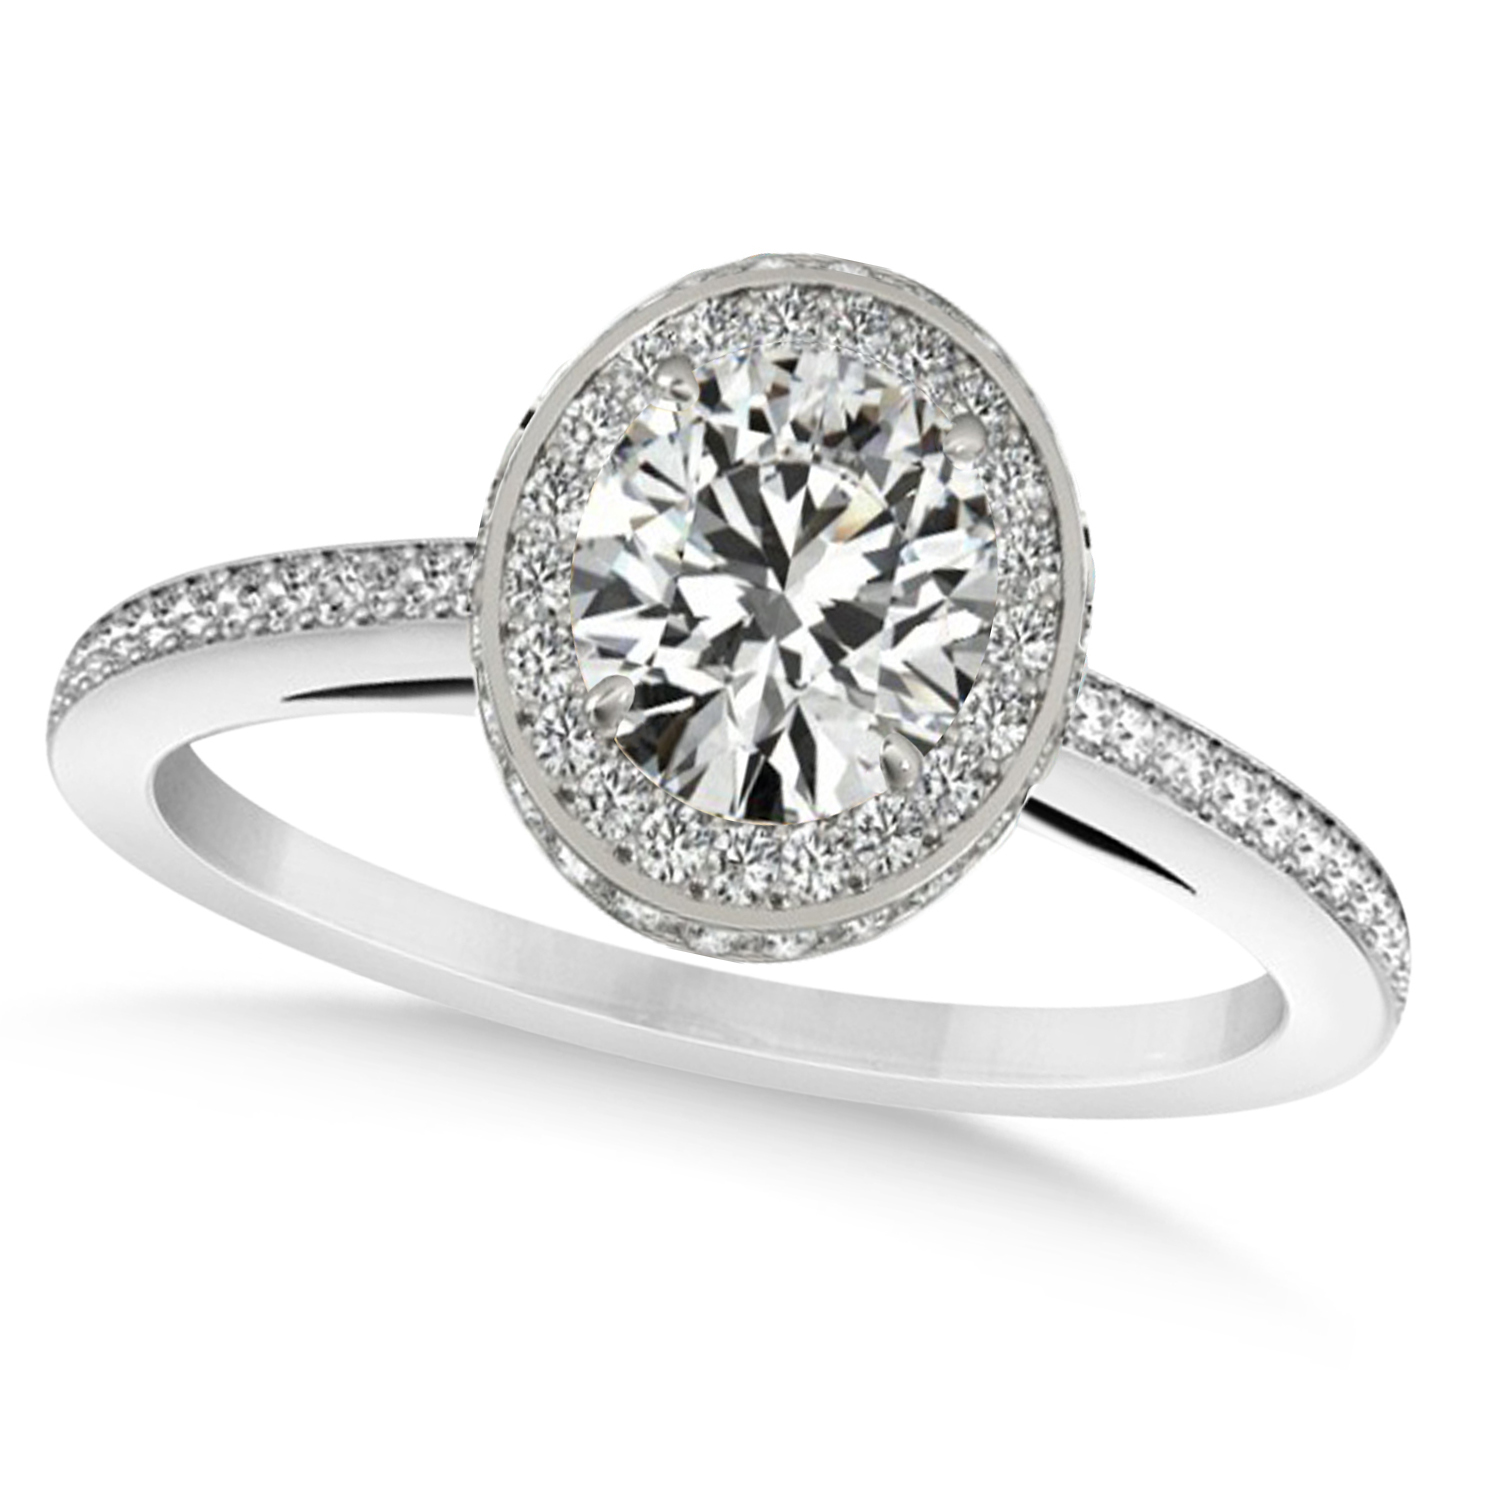 Oval diamond halo engagement ring 14K white gold (1.71CT) by Allurez.